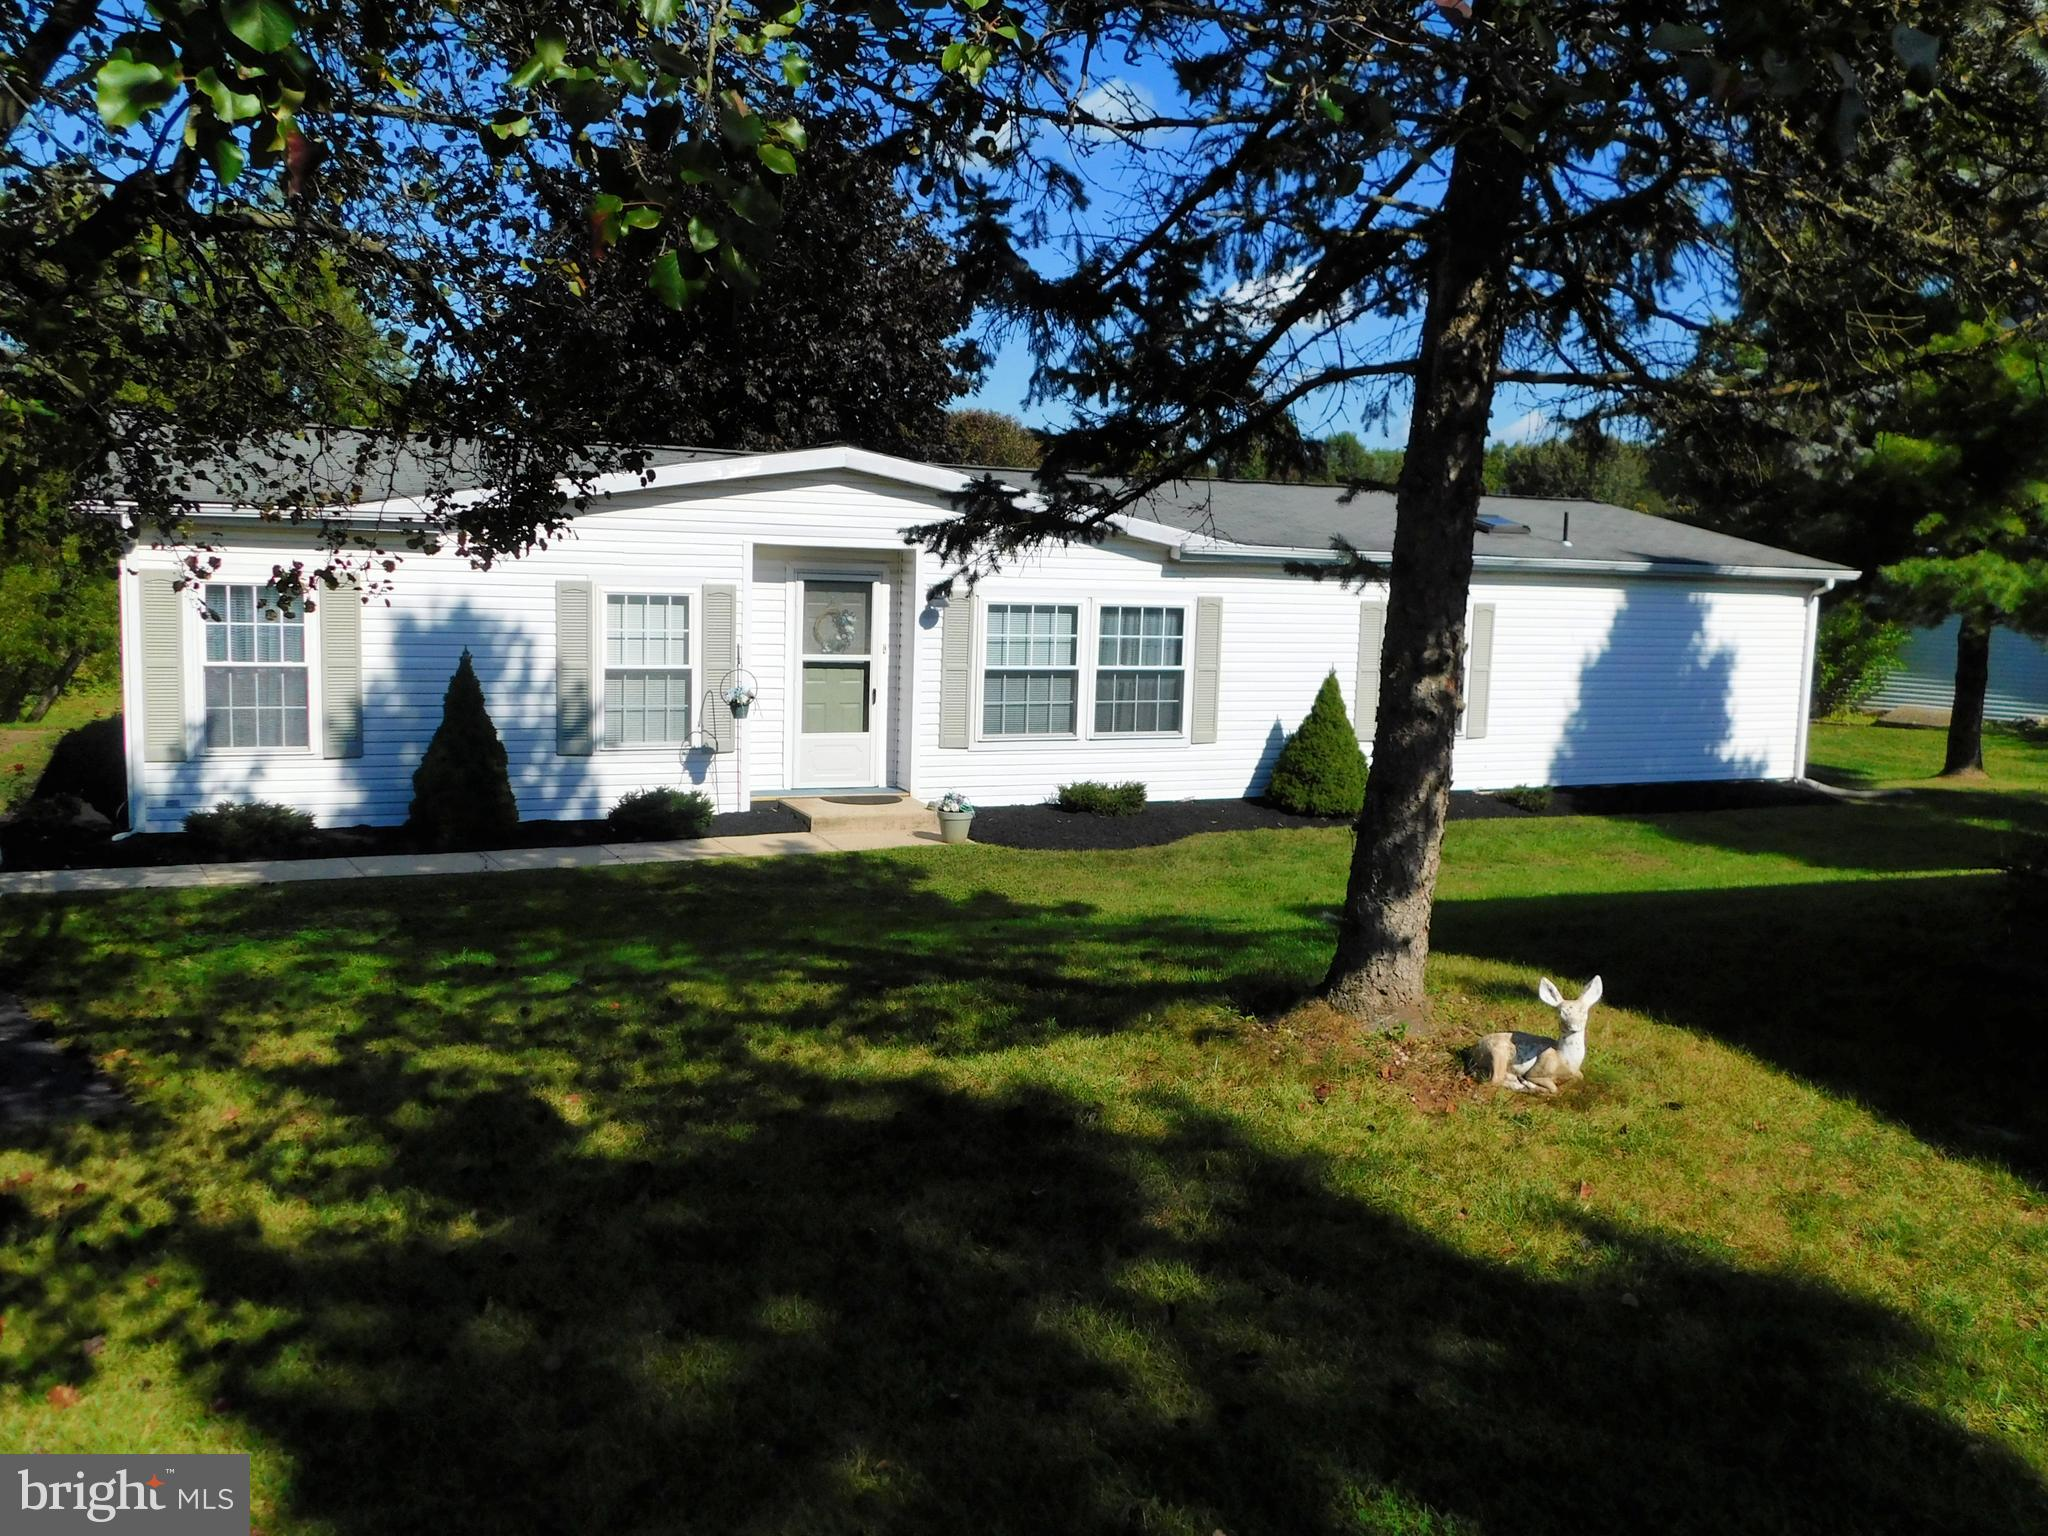 Well maintained large three bedroom manufactured home located in Walnut Meadows, an age restricted community.  The home is located at the end of a Cul-de-Sac. One of the largest homes in the community the includes a 12 x 20 three seasons sun porch.  This home features a formal living room, family room and a open concept with large kitchen and dining area.  The master bedroom has a walk-in closet and features a master bath with a jetted tub.  This home is just waiting for your personal touches to make it a special place.  Land rent is $750 which can increase.  Lot rent includes Pool, Club House, sewer,  trash, maintenance of common areas that includes snow removal (snow removal of house parking area are the responsiblity of the homwowener).  Listing Agent is related to the seller.